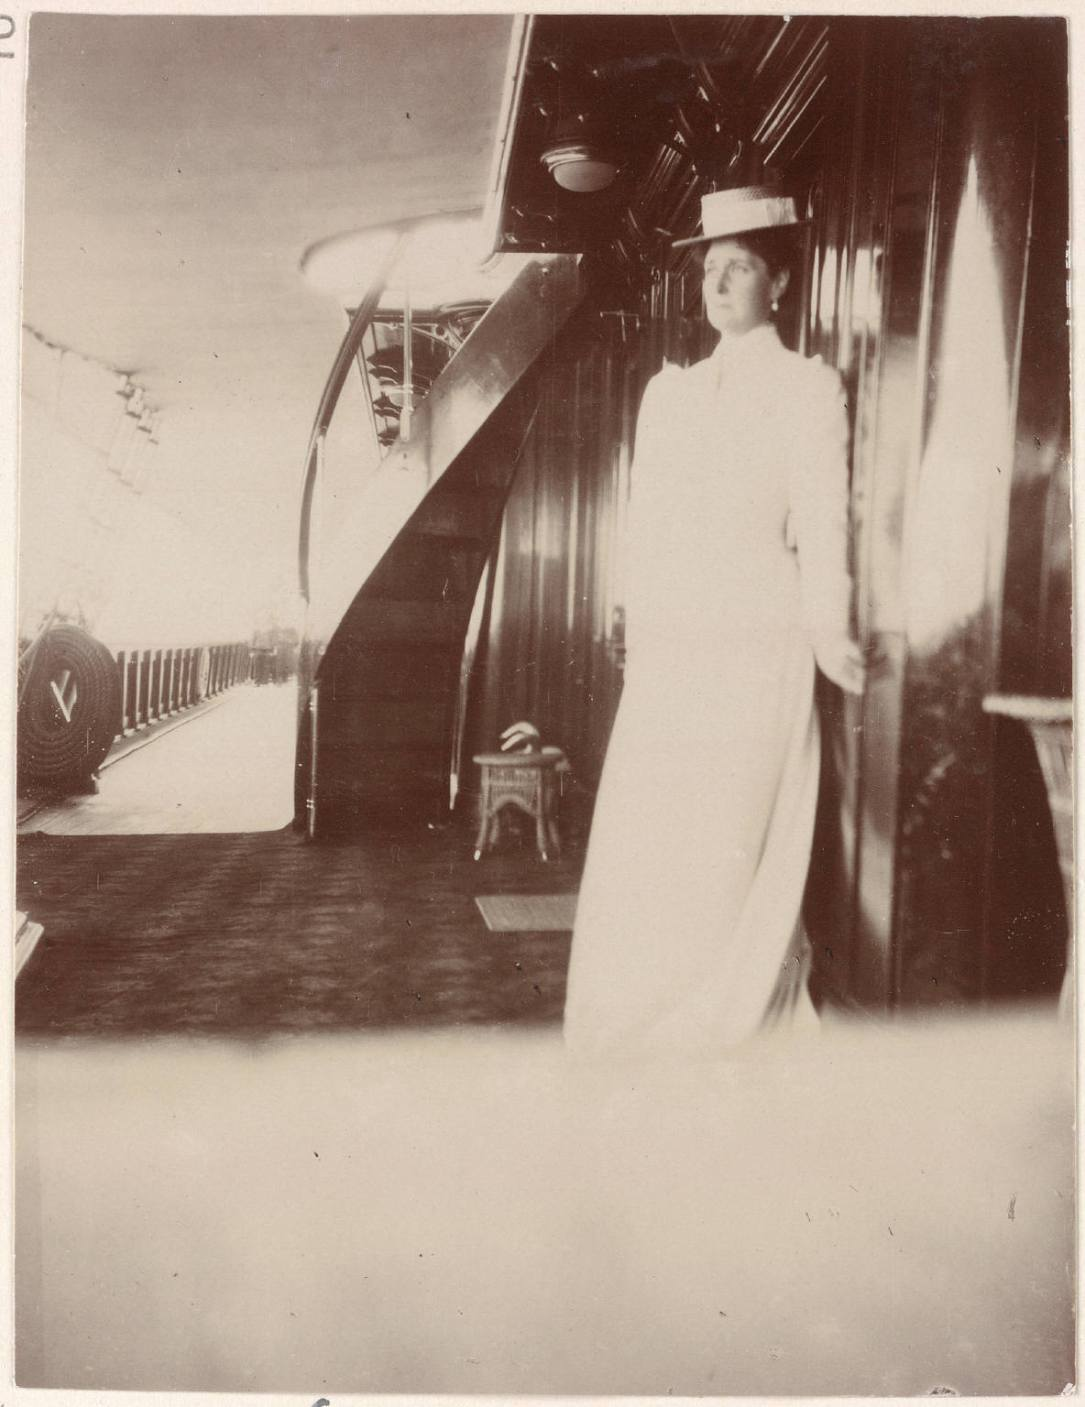 Photography from the private archive of the Romanovs family-Lujon Magazine42